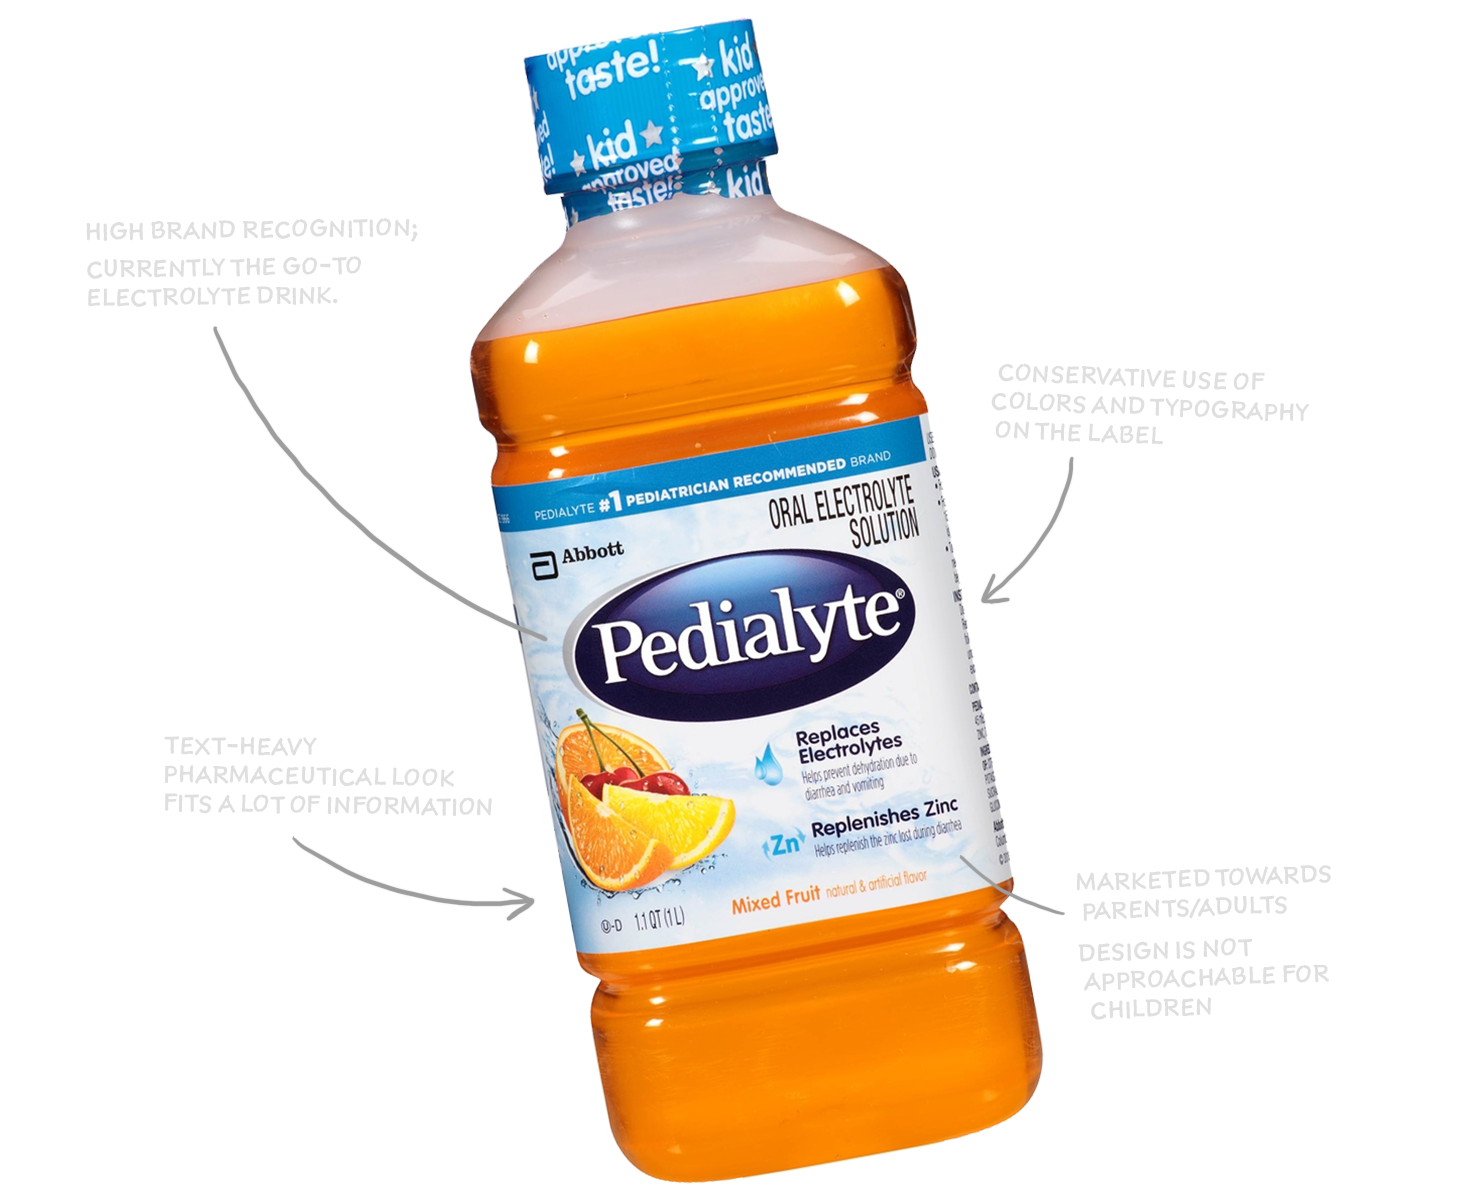 An analysis of Pedialyte beverage packaging showing strengths and weaknesses